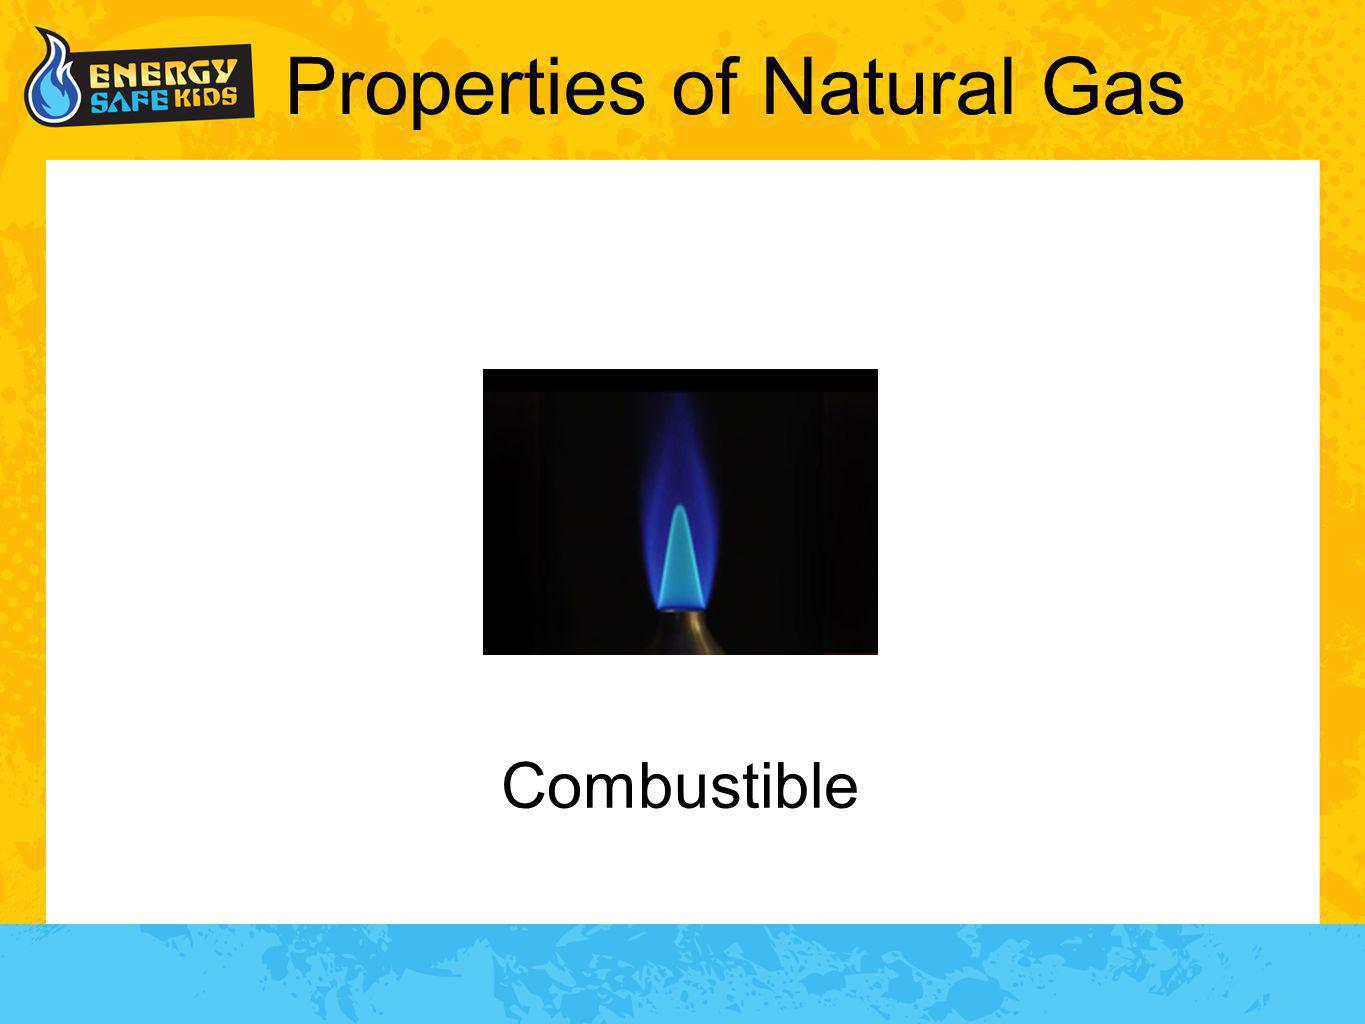 Properties of Natural Gas Combustible